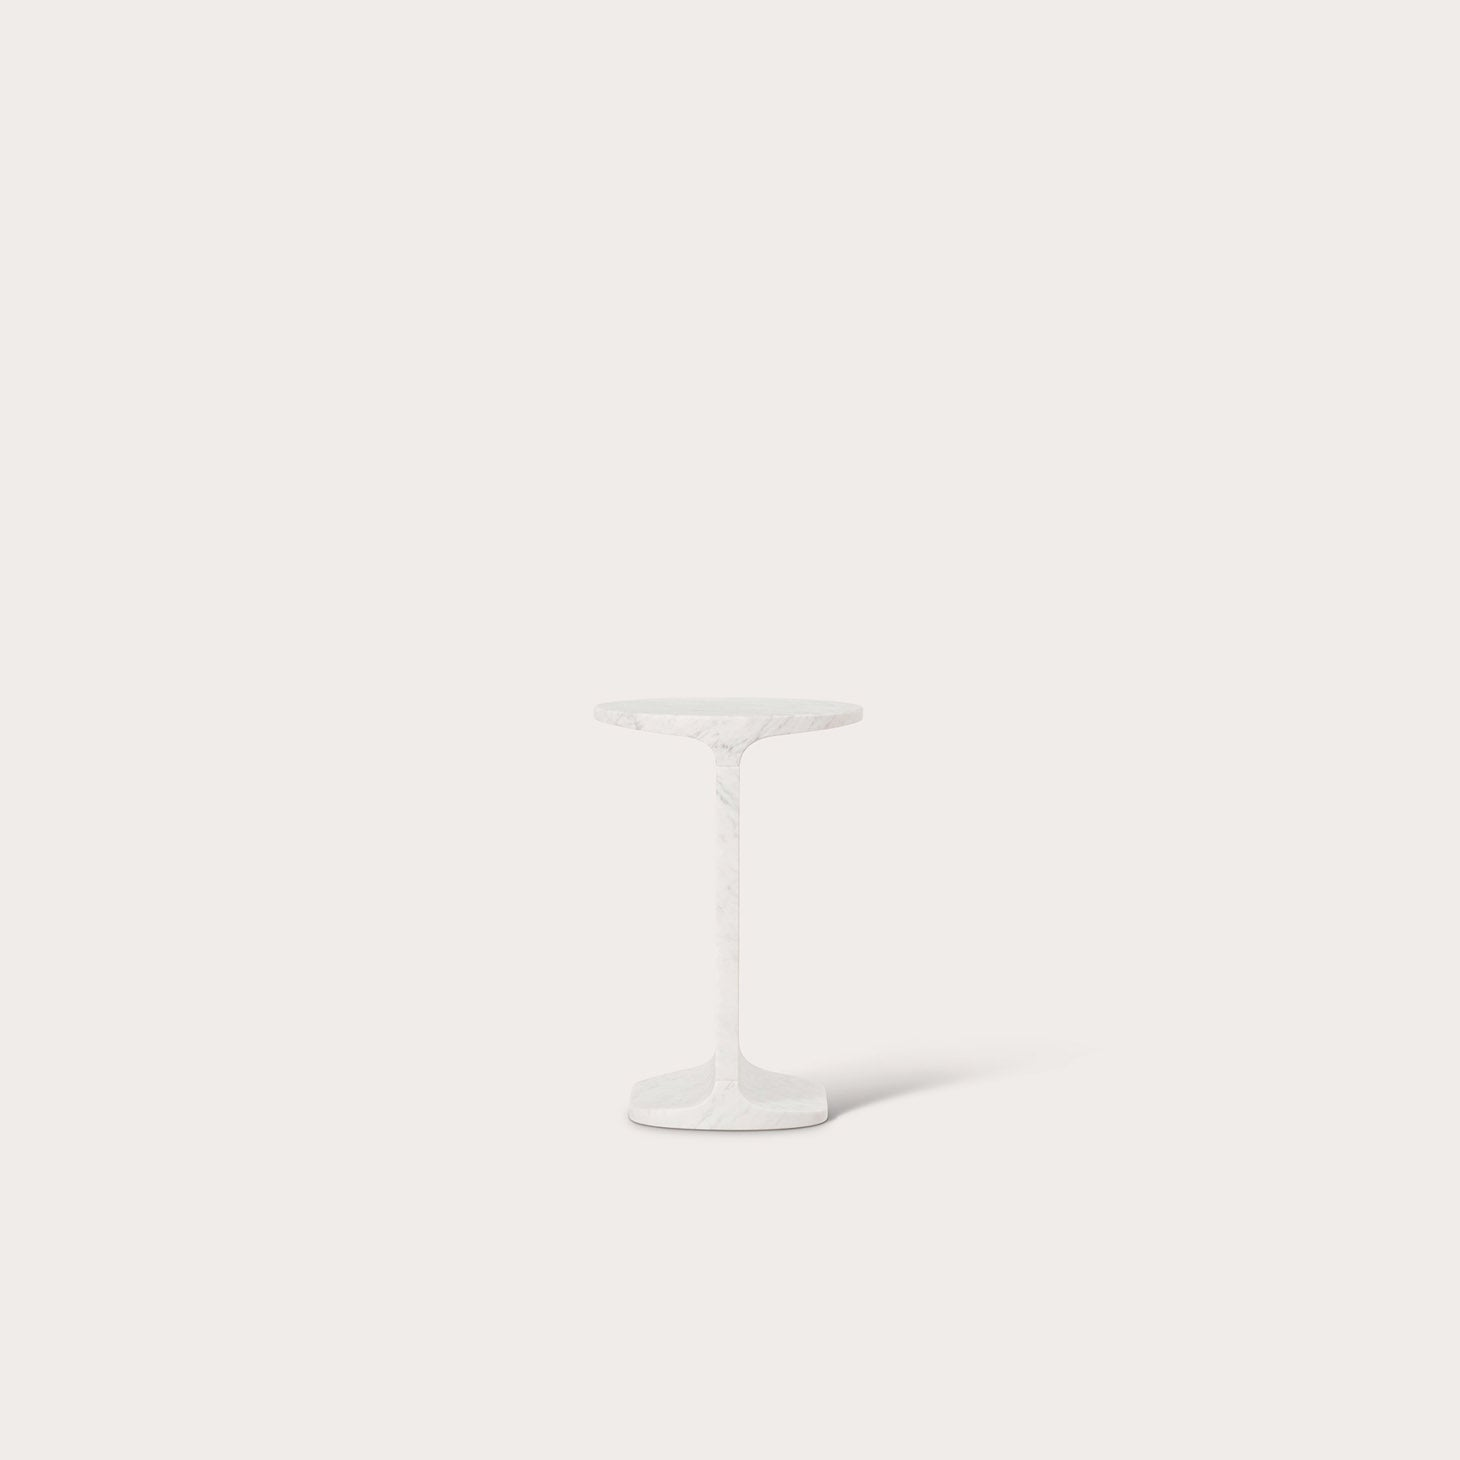 Ipe Tondo Tables James Irvine Designer Furniture Sku: 625-230-10066